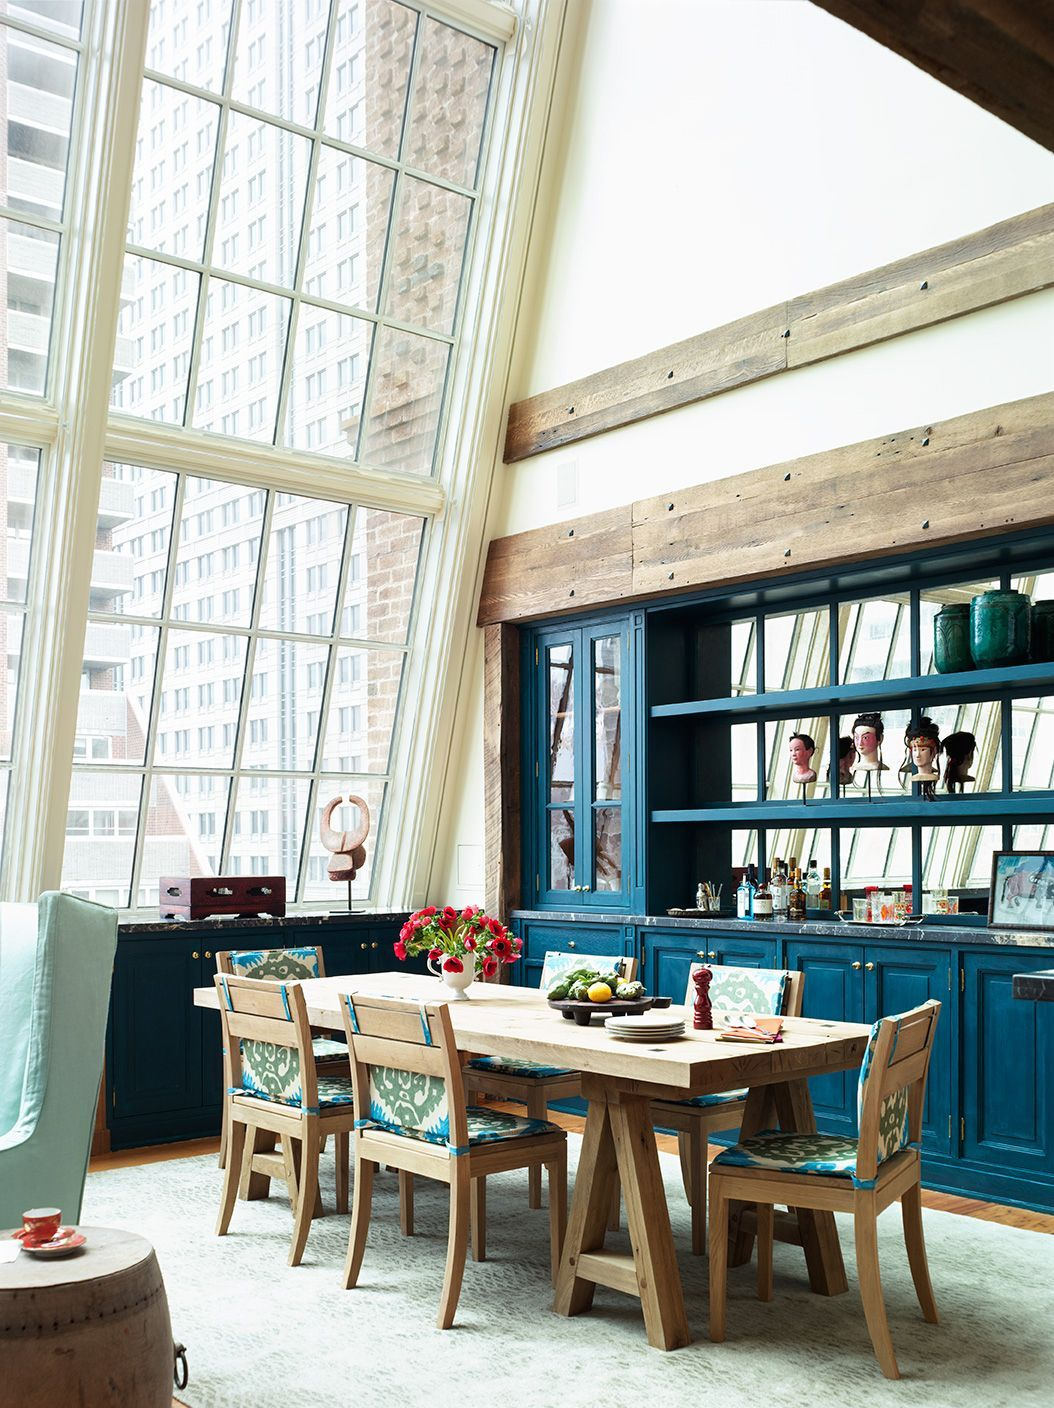 The Best Staycation Hotels in New York City | Greenwich hotel ...